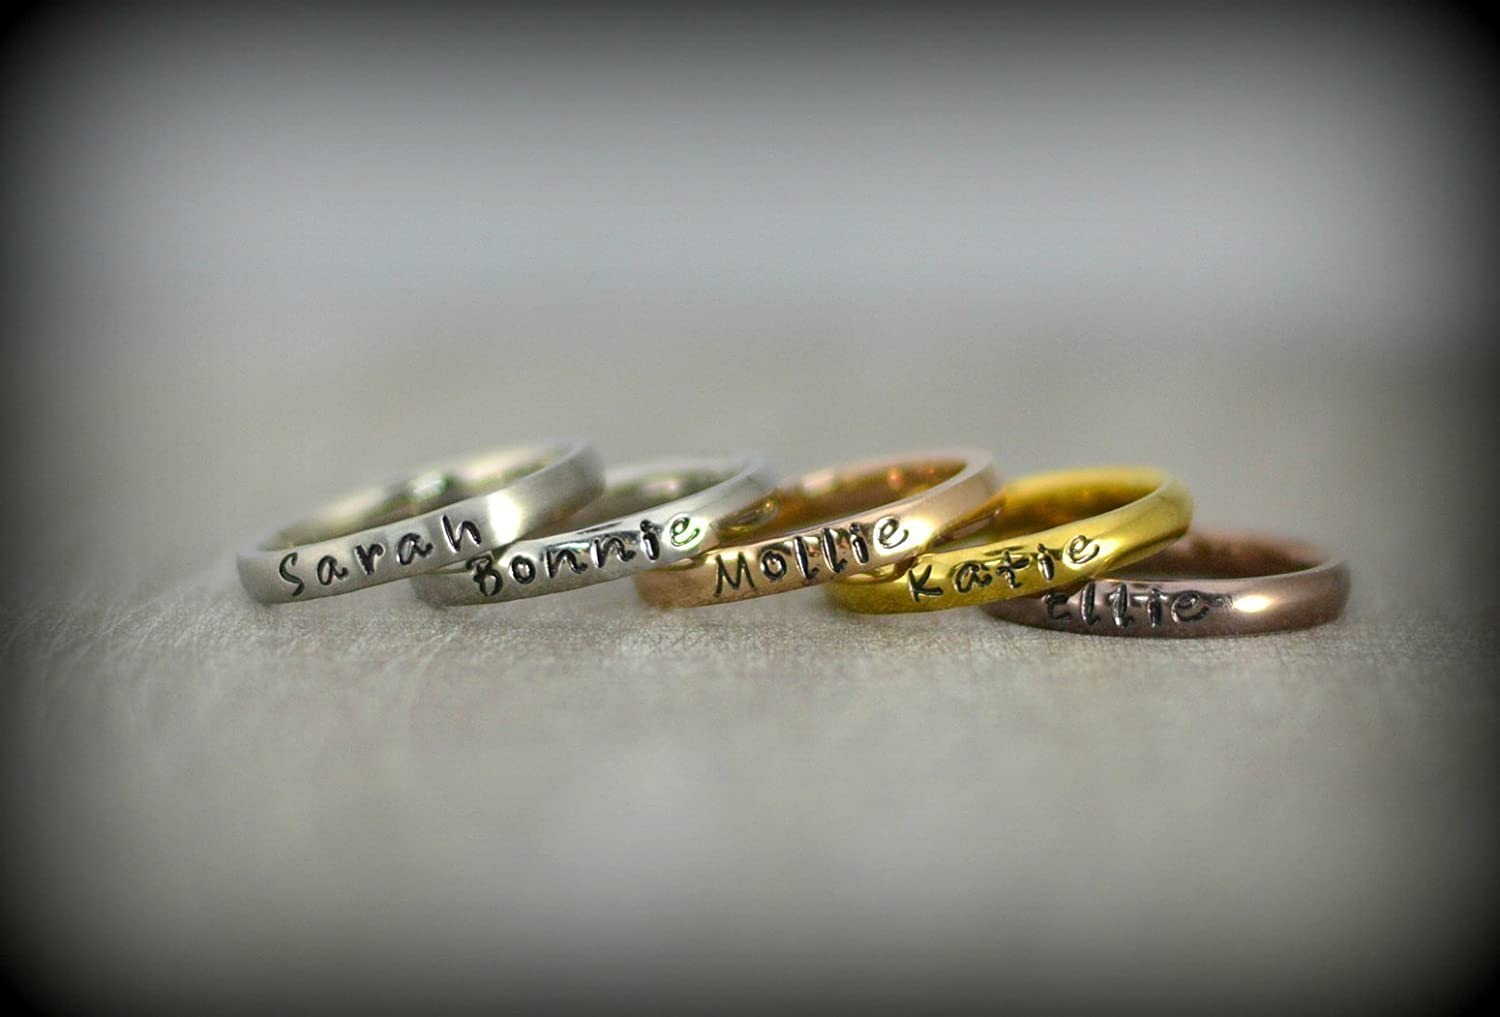 Amazon.com: Personalized Stackable Name Ring - Stacking Rings ...